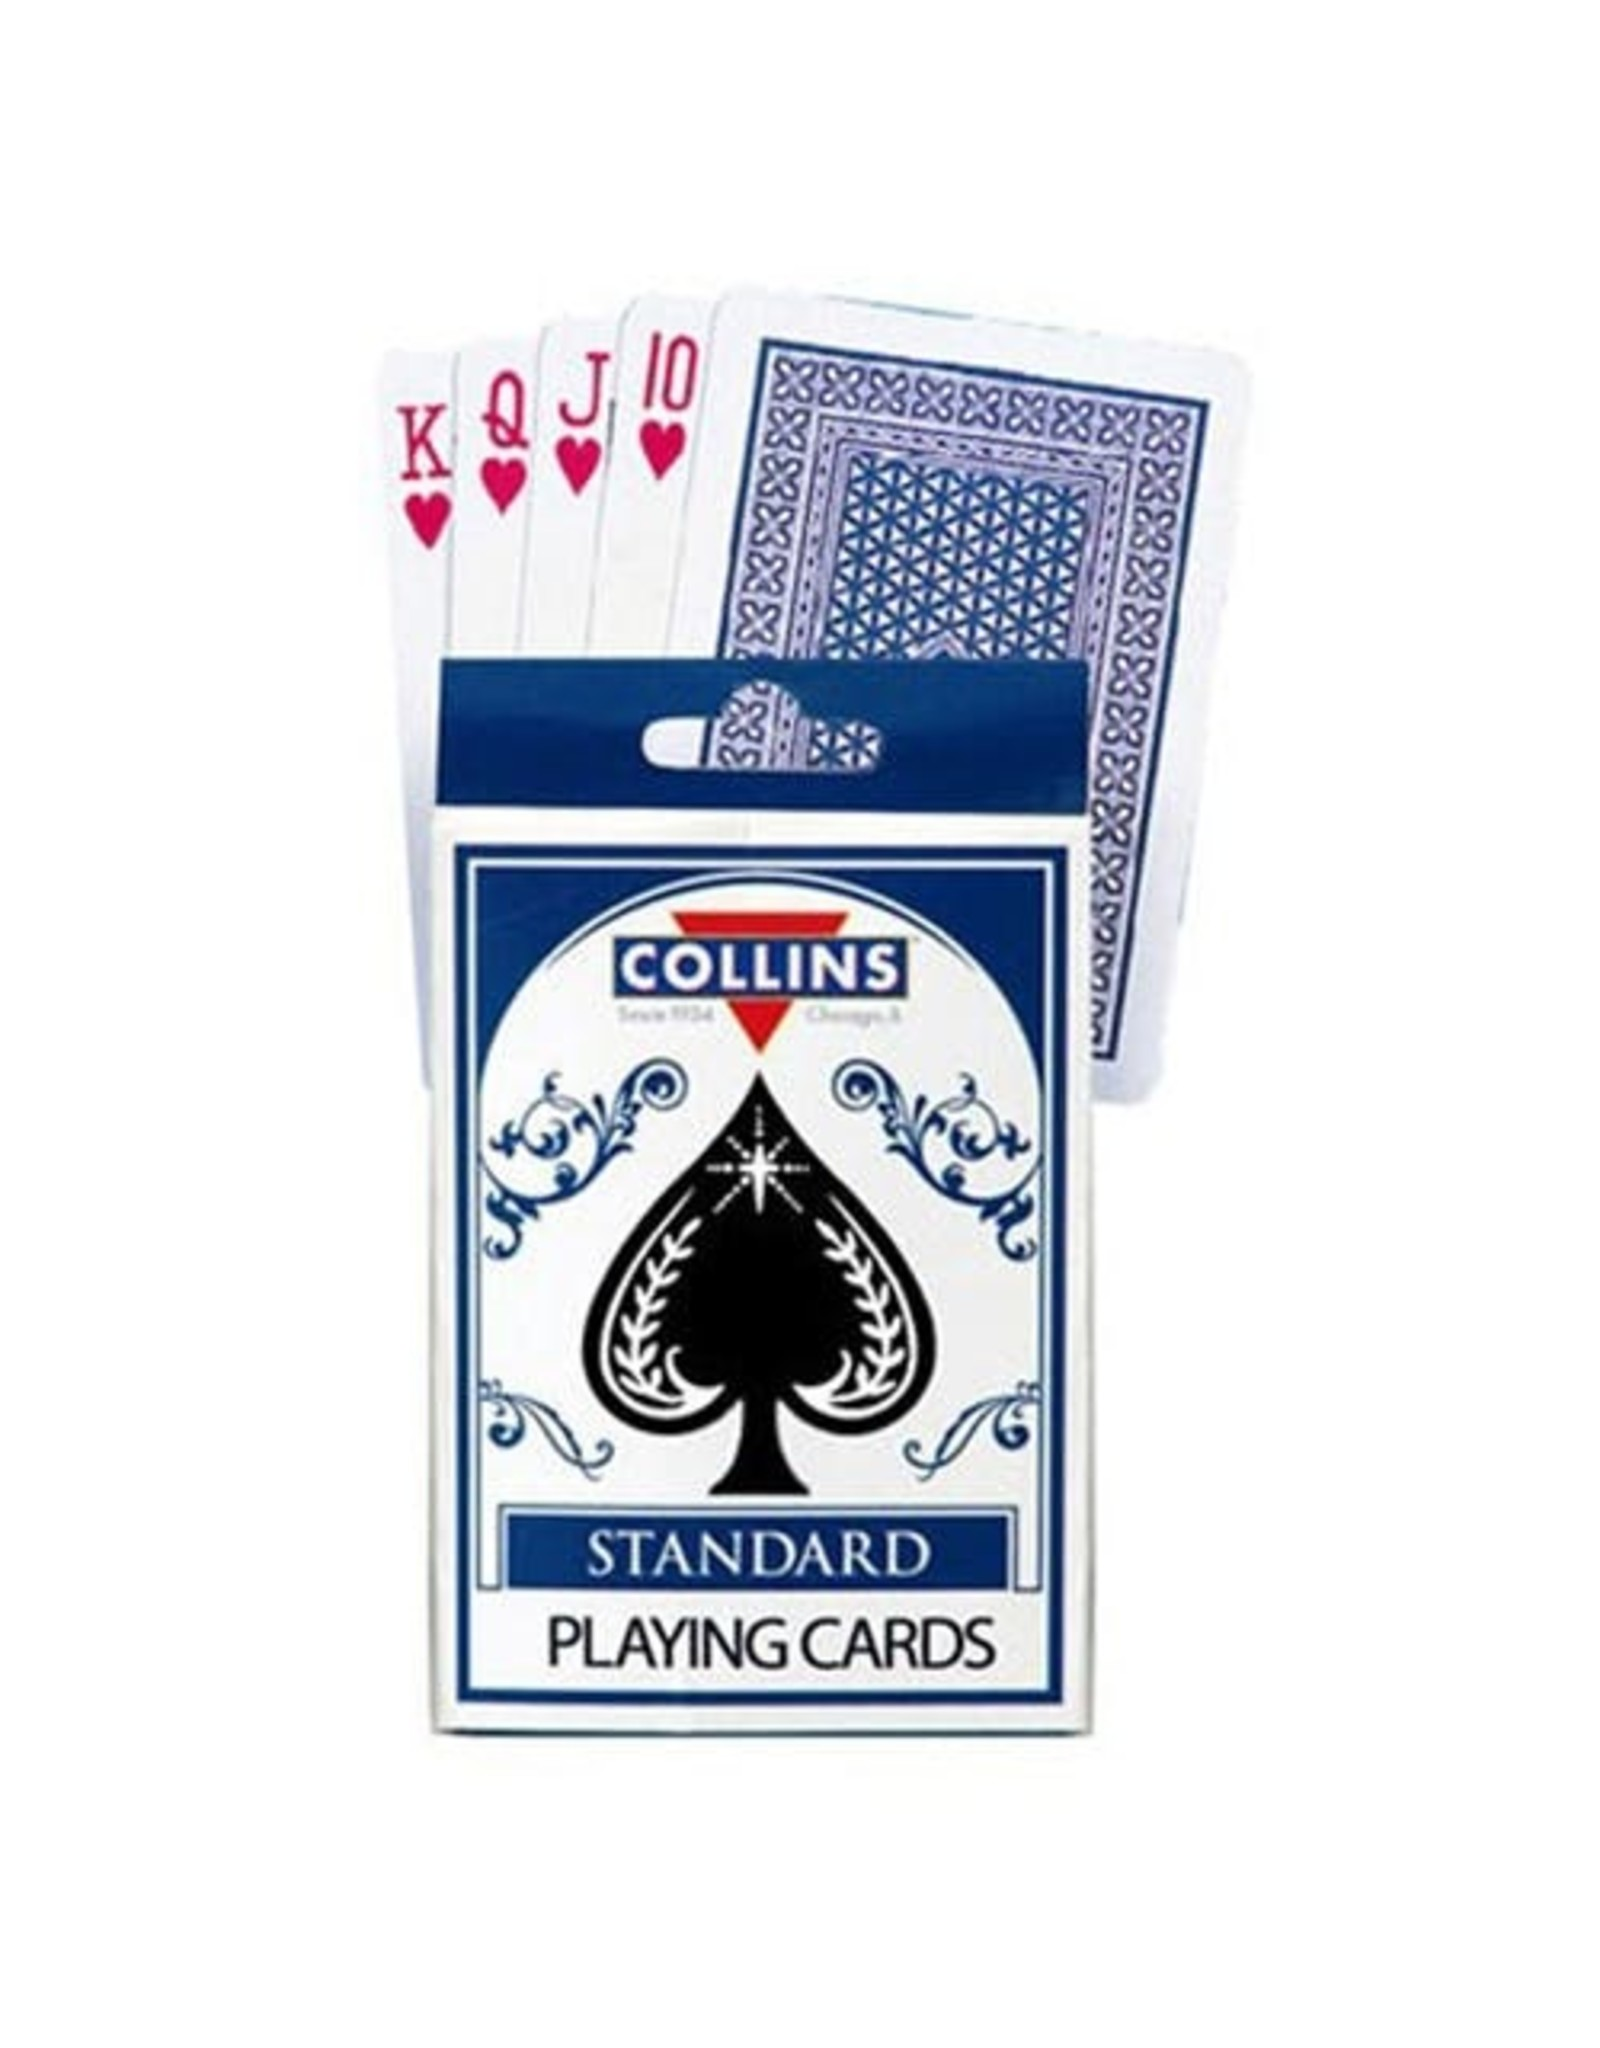 TRUE COLLINS PLAYING CARDS